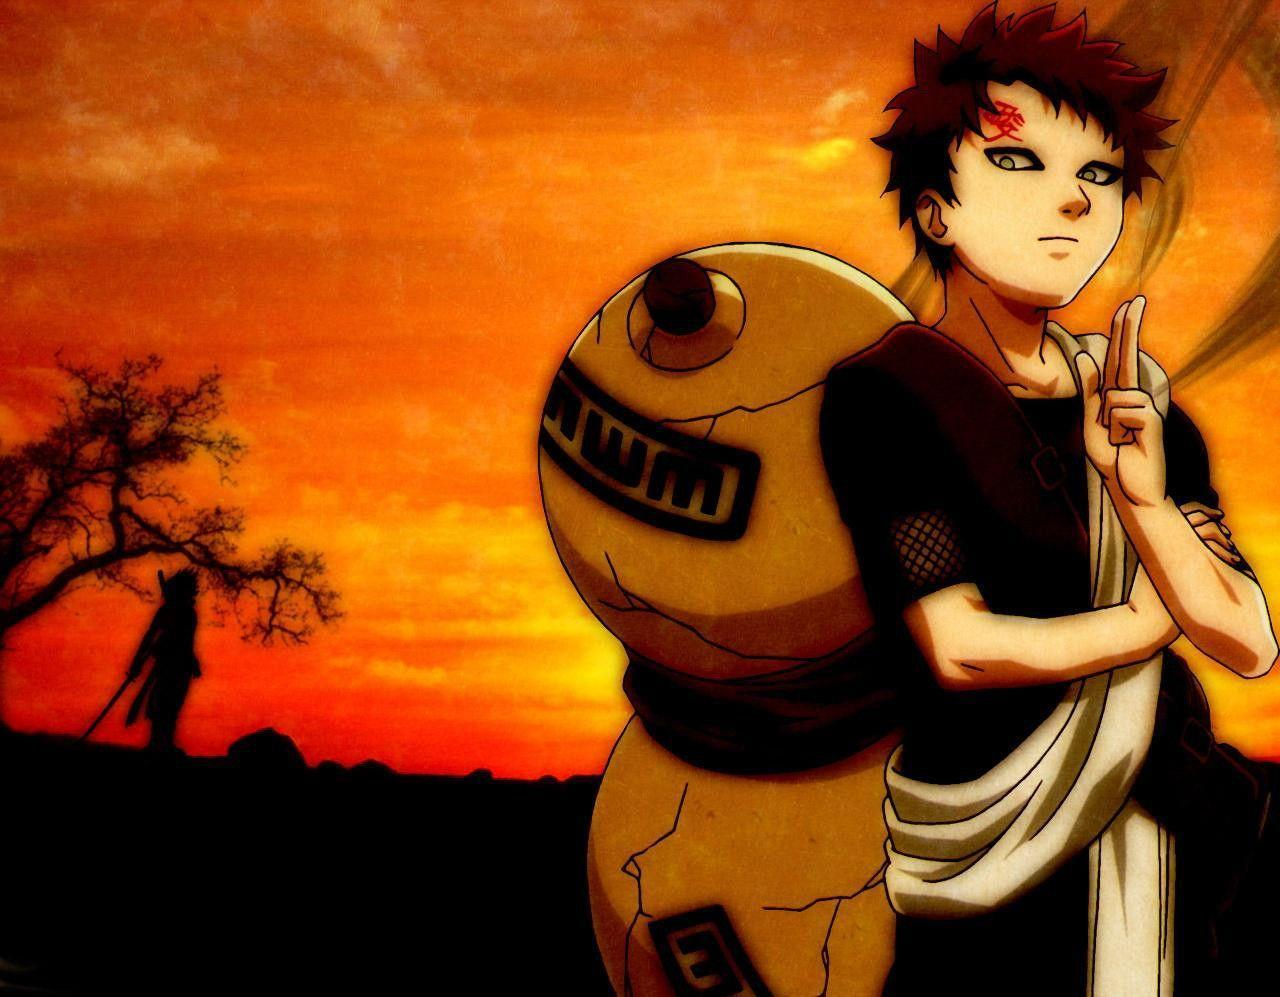 naruto and gaara wallpaper - photo #26